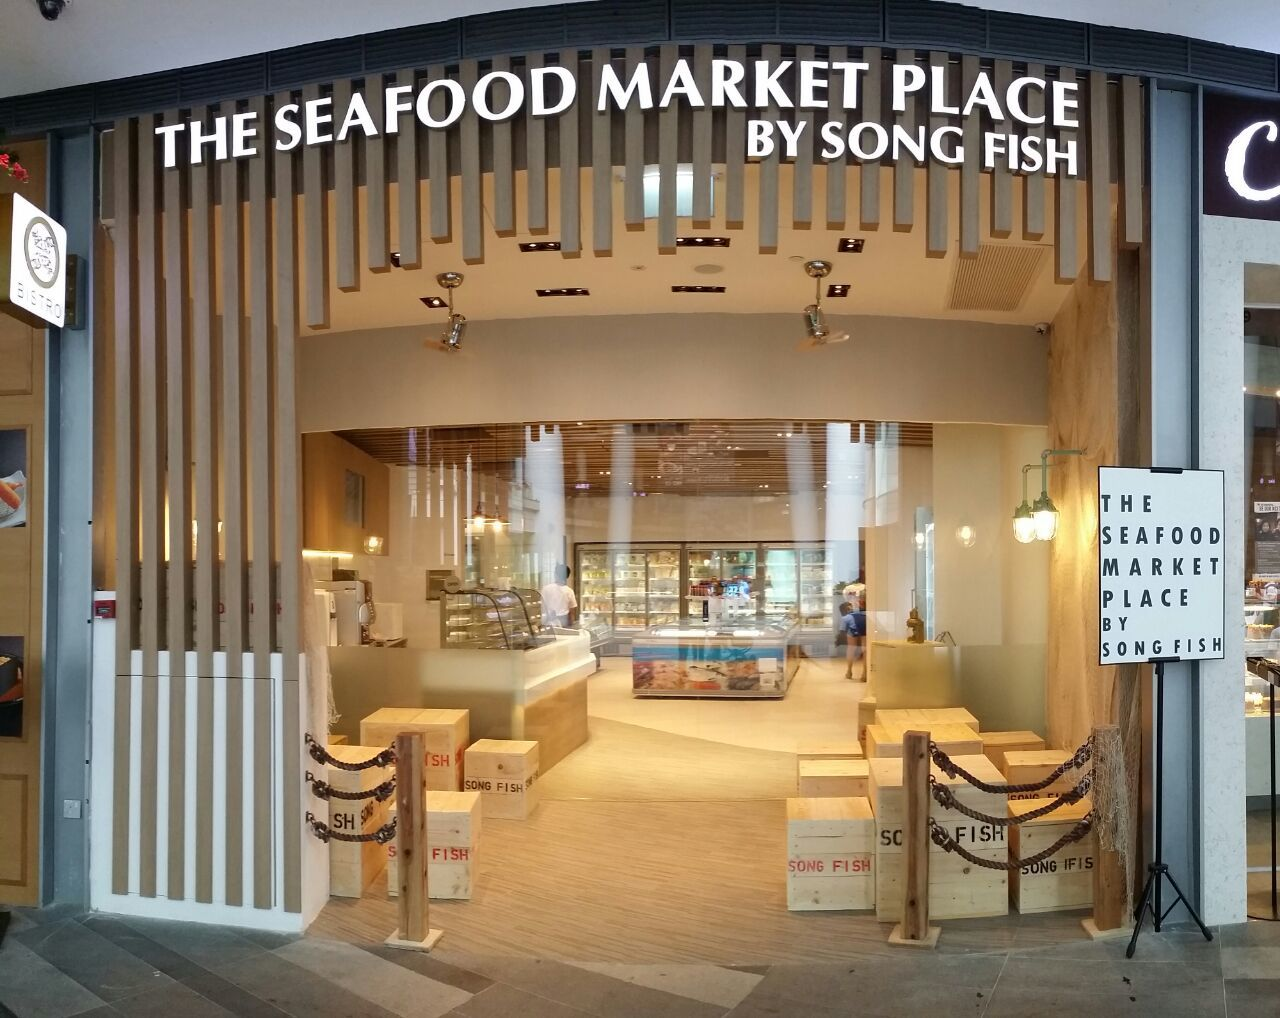 The Seafood Market Place by Song Fish | Shopping in Buona Vista, Singapore